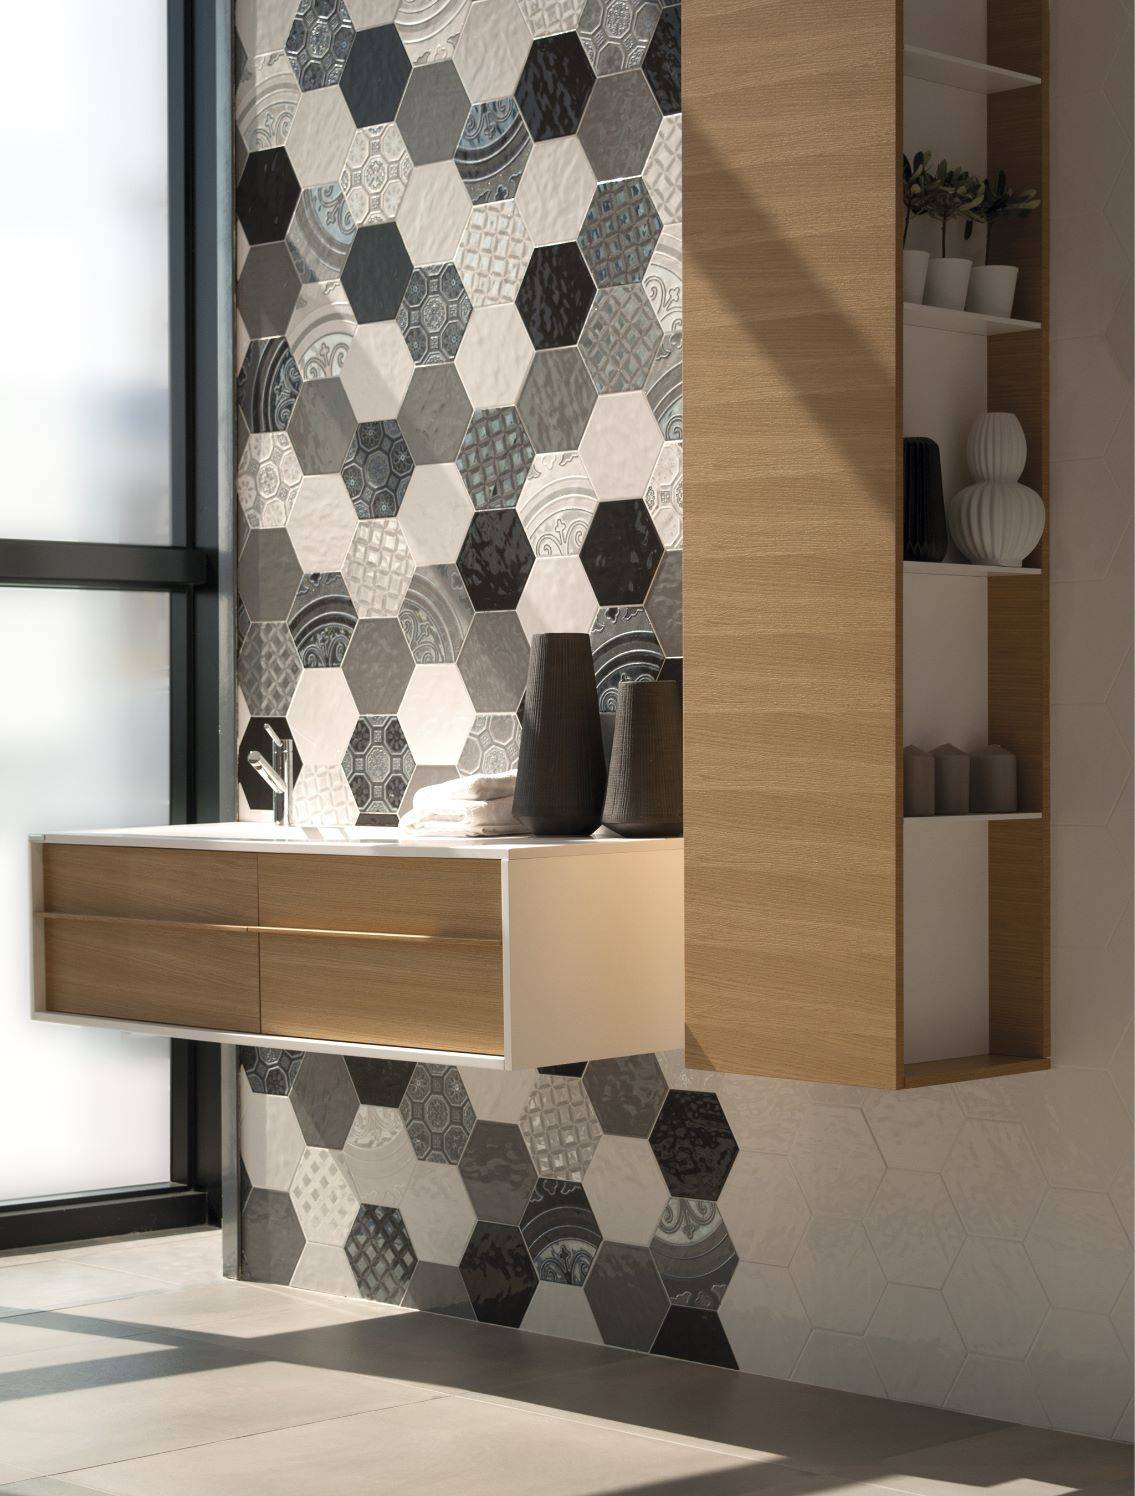 carrelage hexagonal mur couleur montpellier b16 vente de carrelage imitation ciment et bois. Black Bedroom Furniture Sets. Home Design Ideas